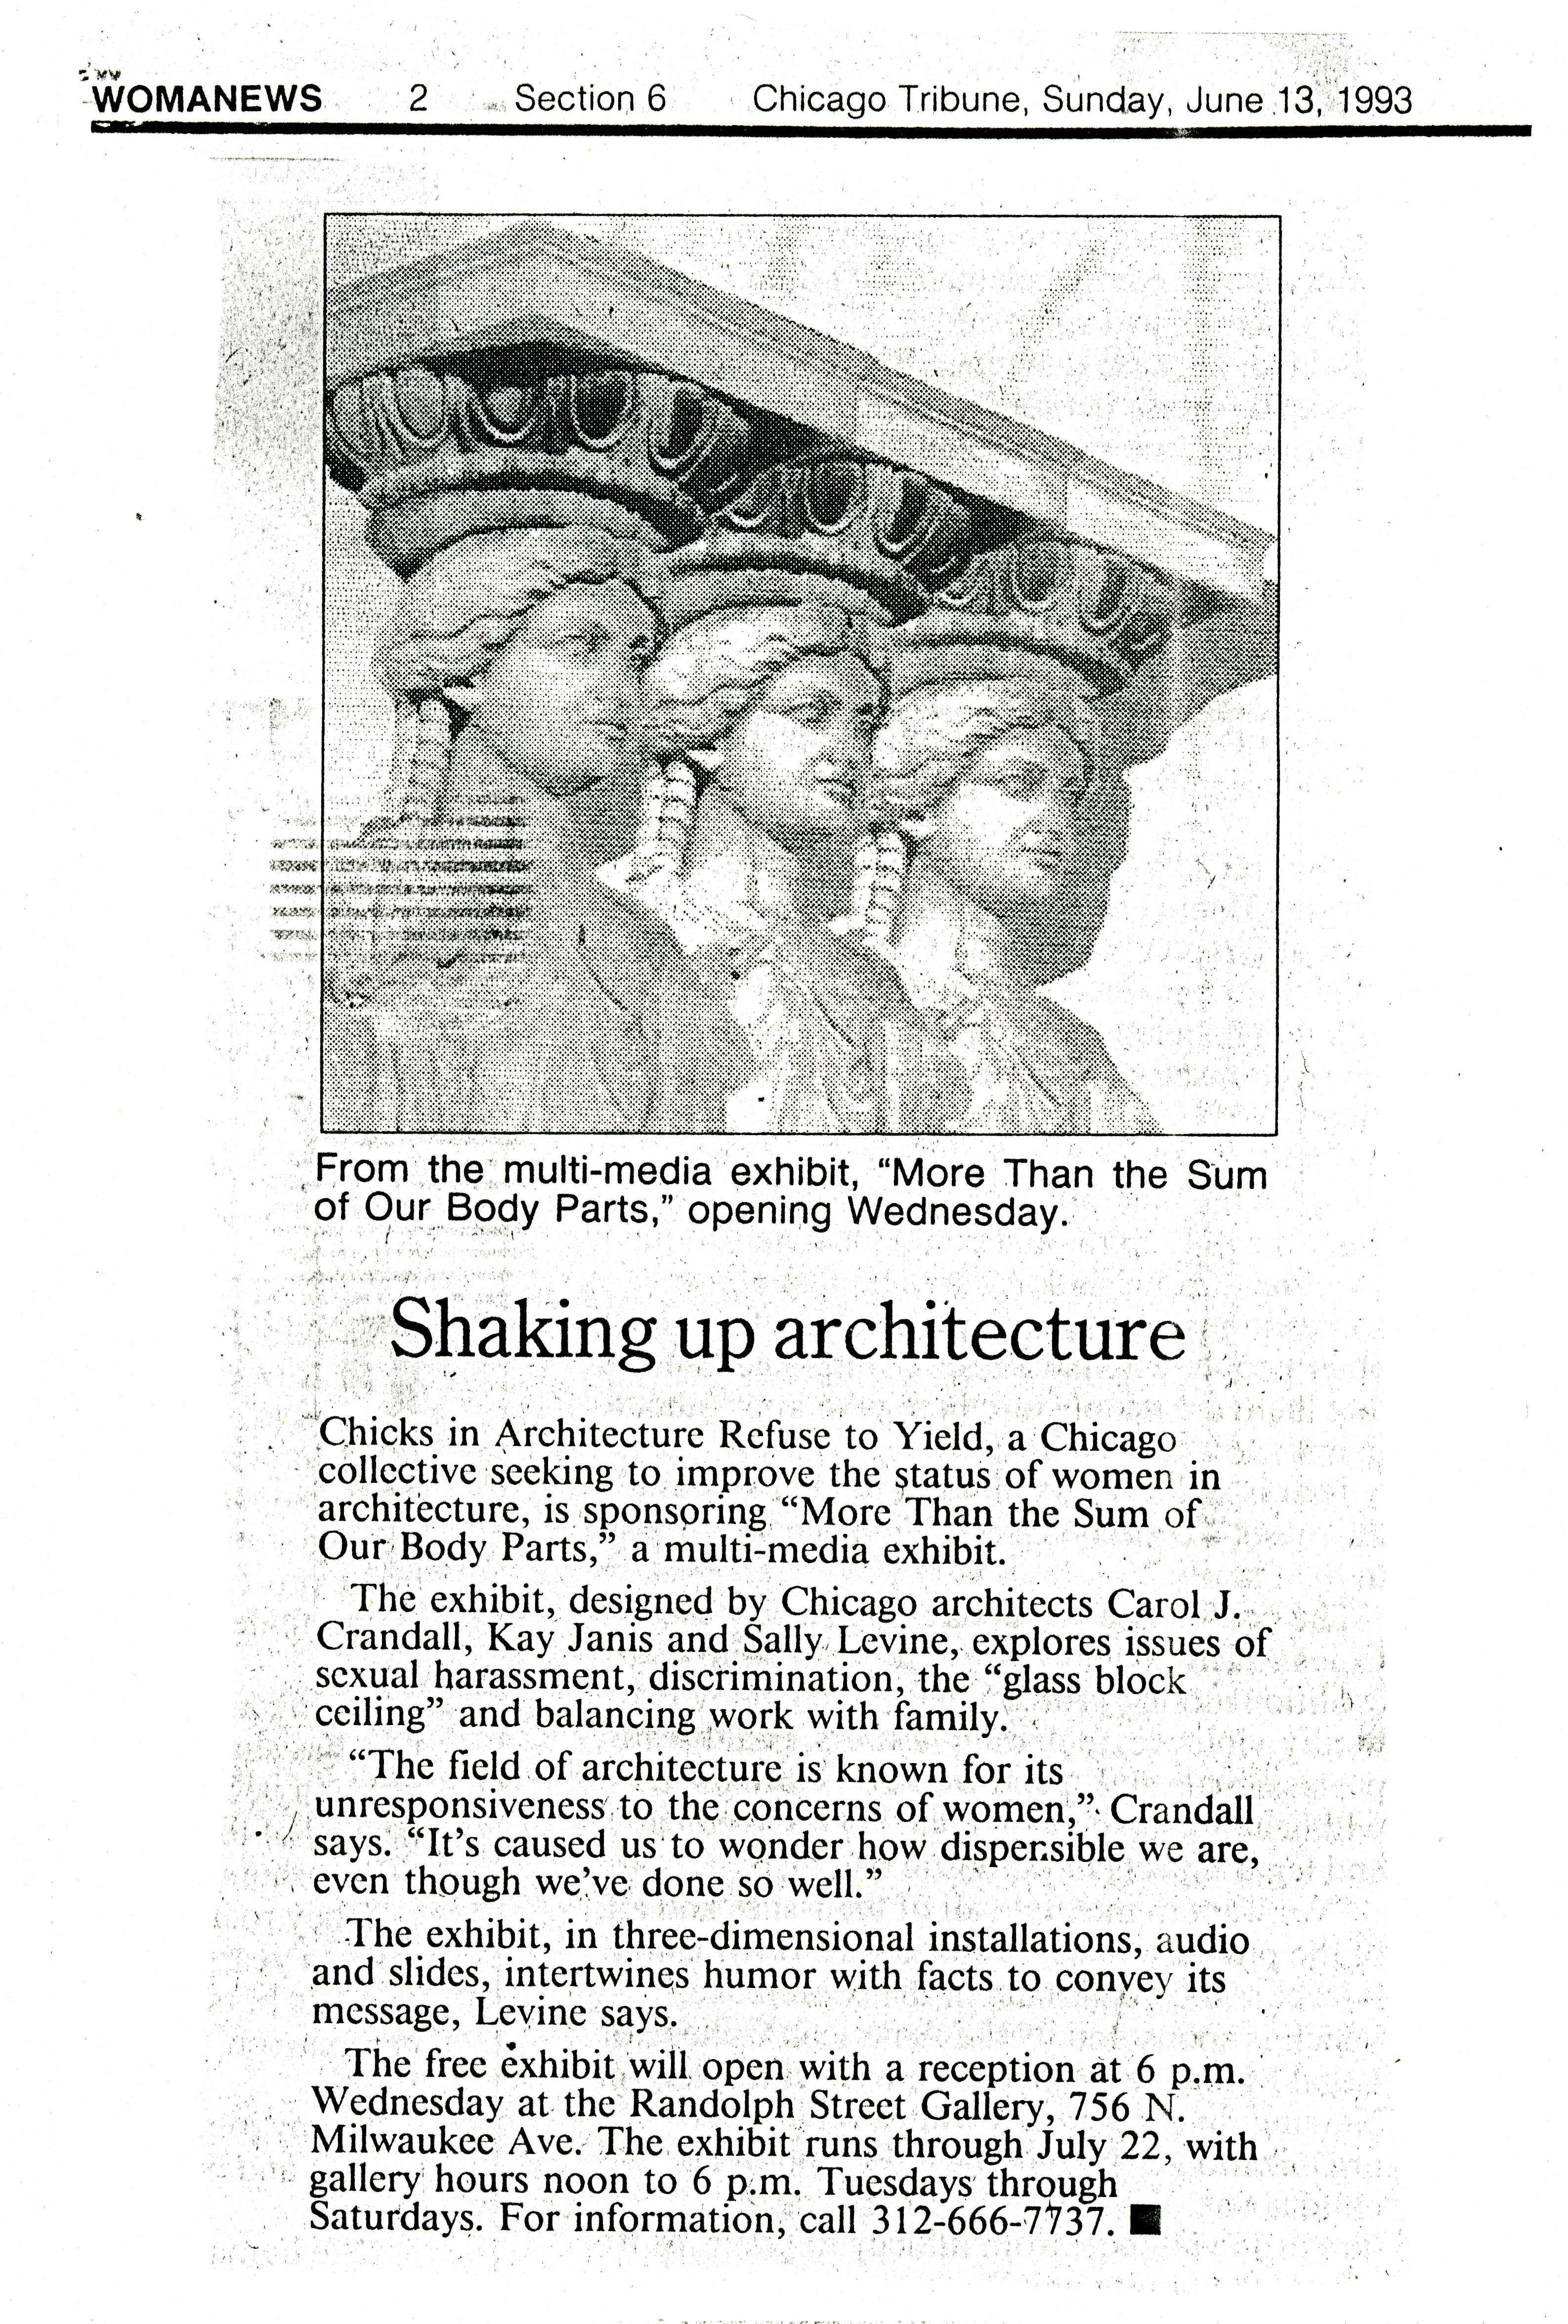 Photocopy of newspaper article